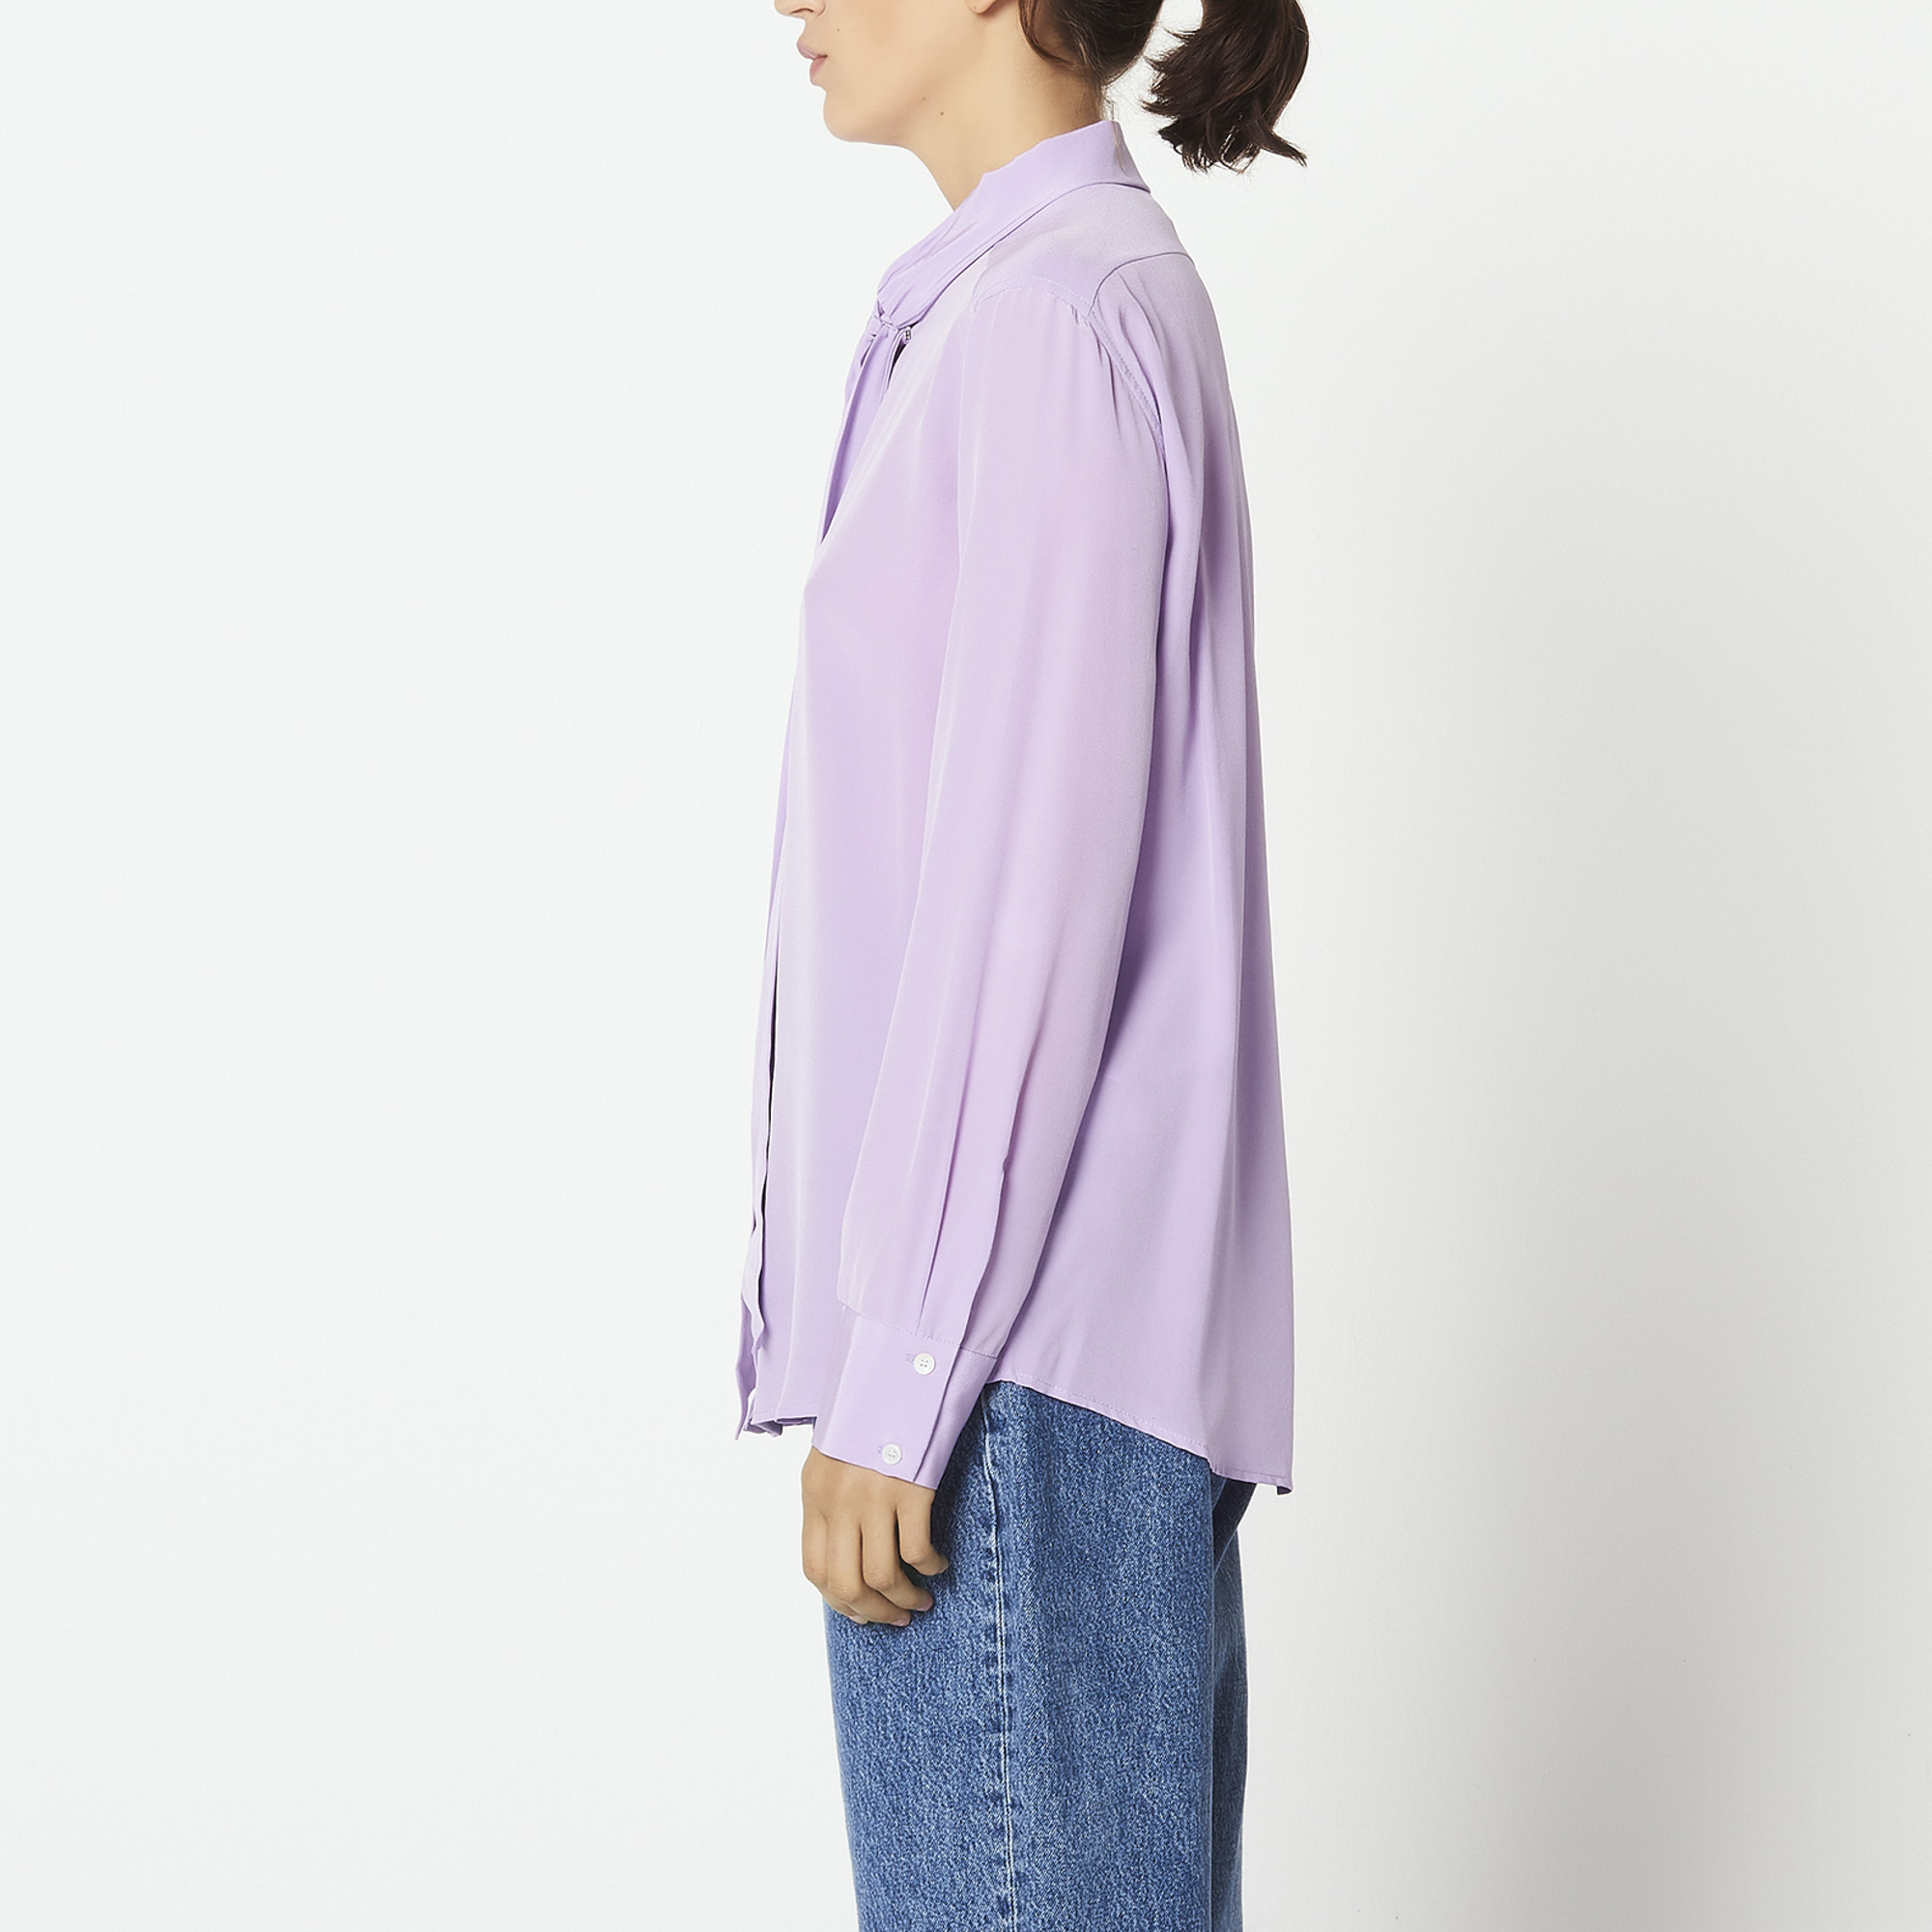 6dedefe7242cd9 ... silk shirt with bow   Tops   Shirts color Lilac ...